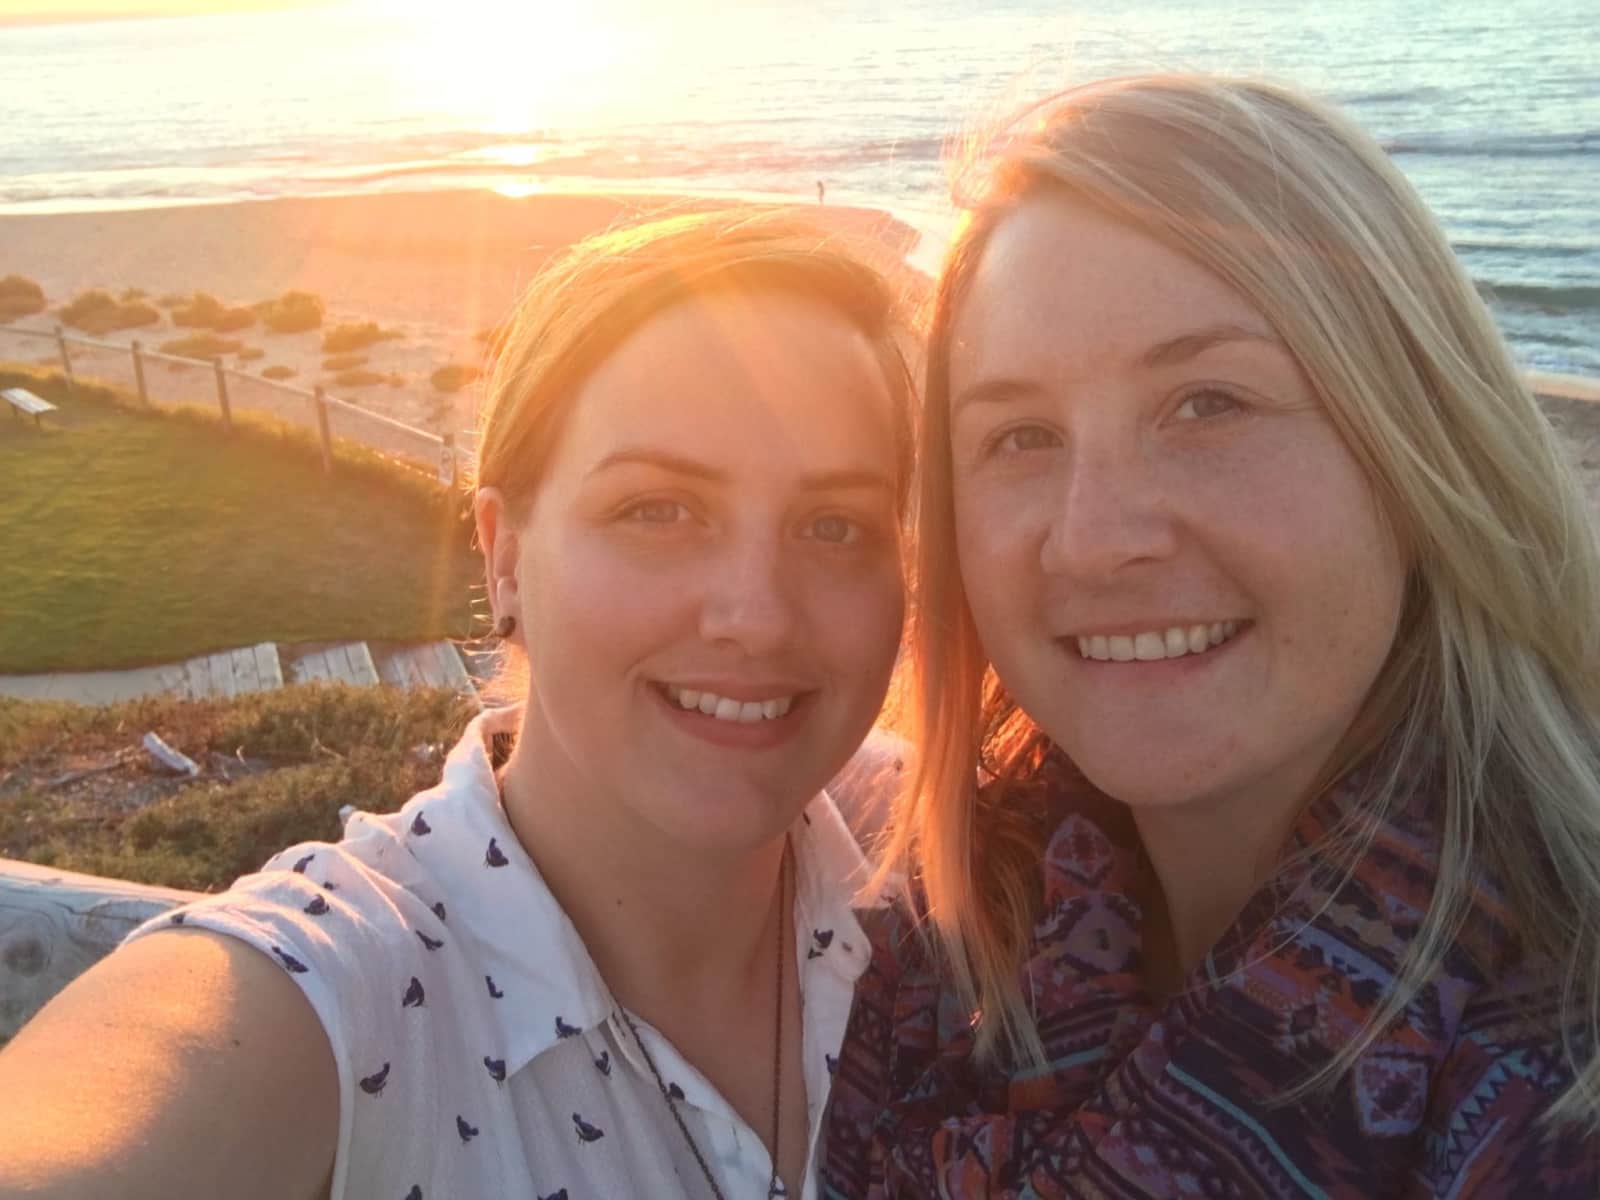 Kate & Chantell from Perth, Western Australia, Australia